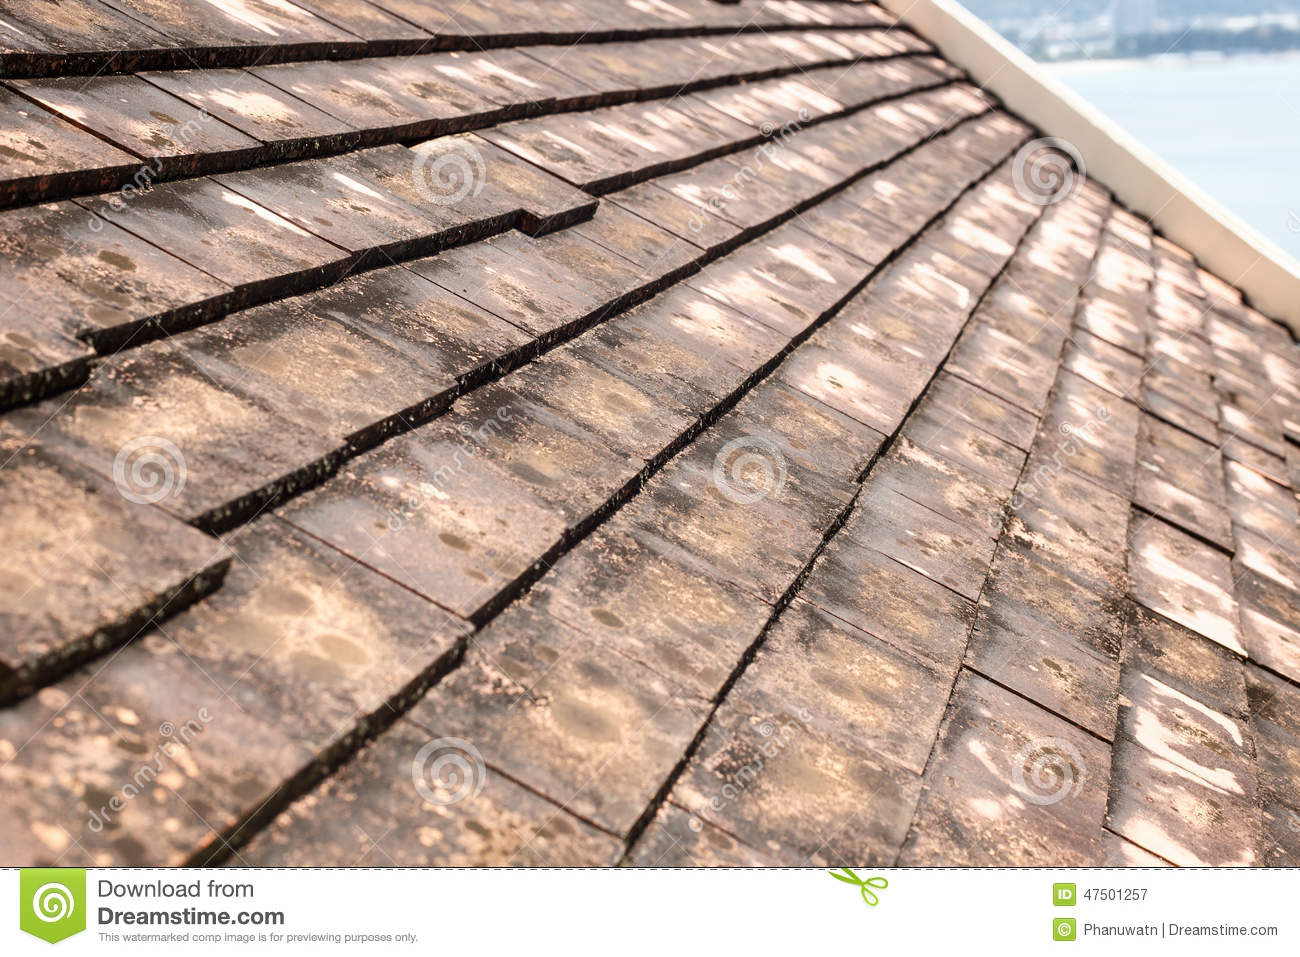 algae clay mold old roof ... & Old Clay Roof Tiles With Mold And Algae Stock Photo - Image: 47501257 memphite.com